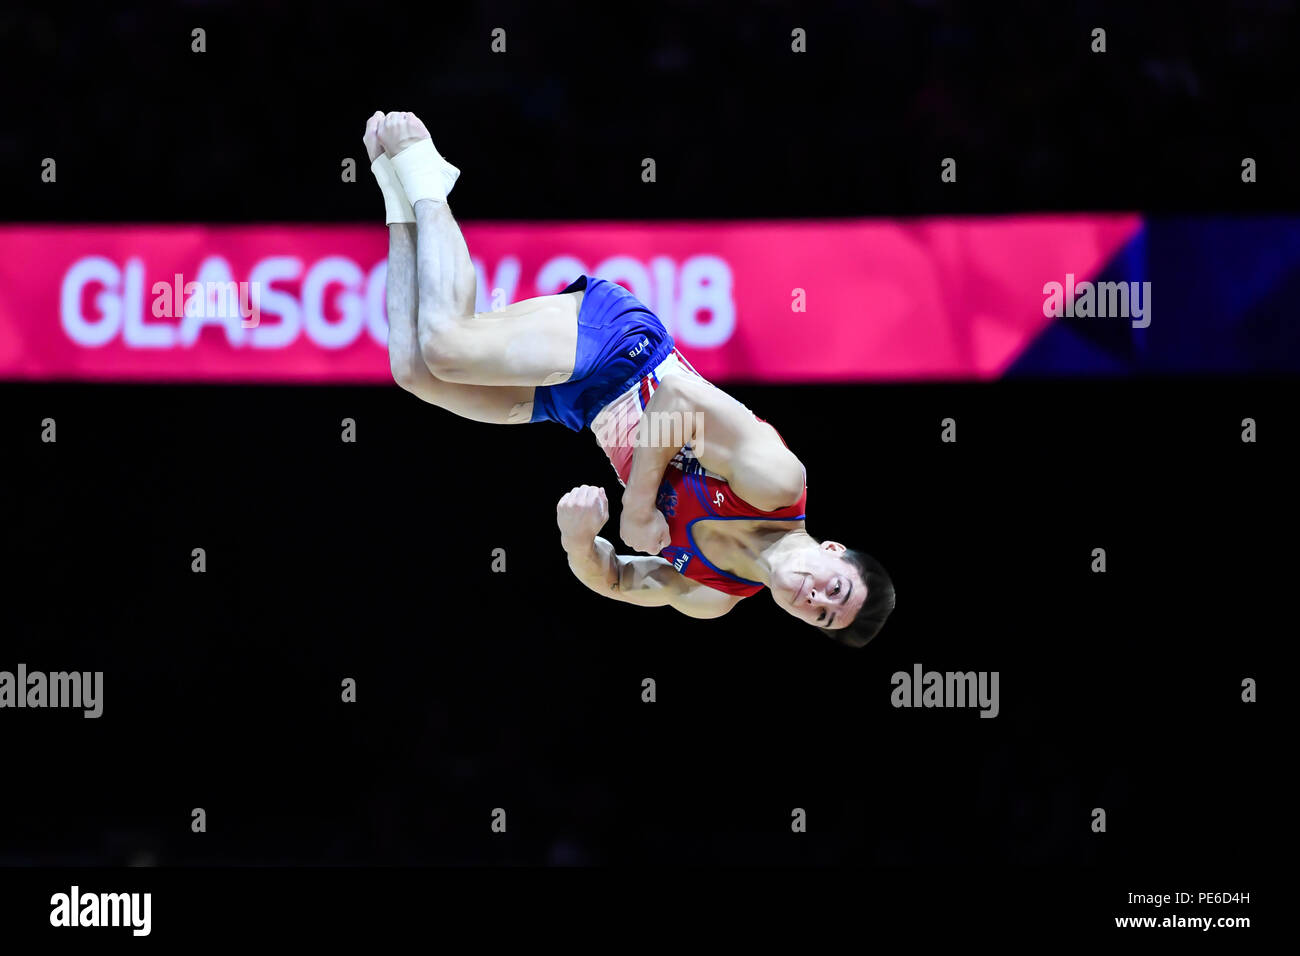 Glasgow, Scotland, UK. 12th August 2018. competes on the Floor Exercise in Men's Artistic Gymnastics Apparatus Finals during the European Championships Glasgow 2018 at The SSE Hydro on Sunday, 12  August 2018. GLASGOW SCOTLAND. Credit: Taka G Wu - Stock Image